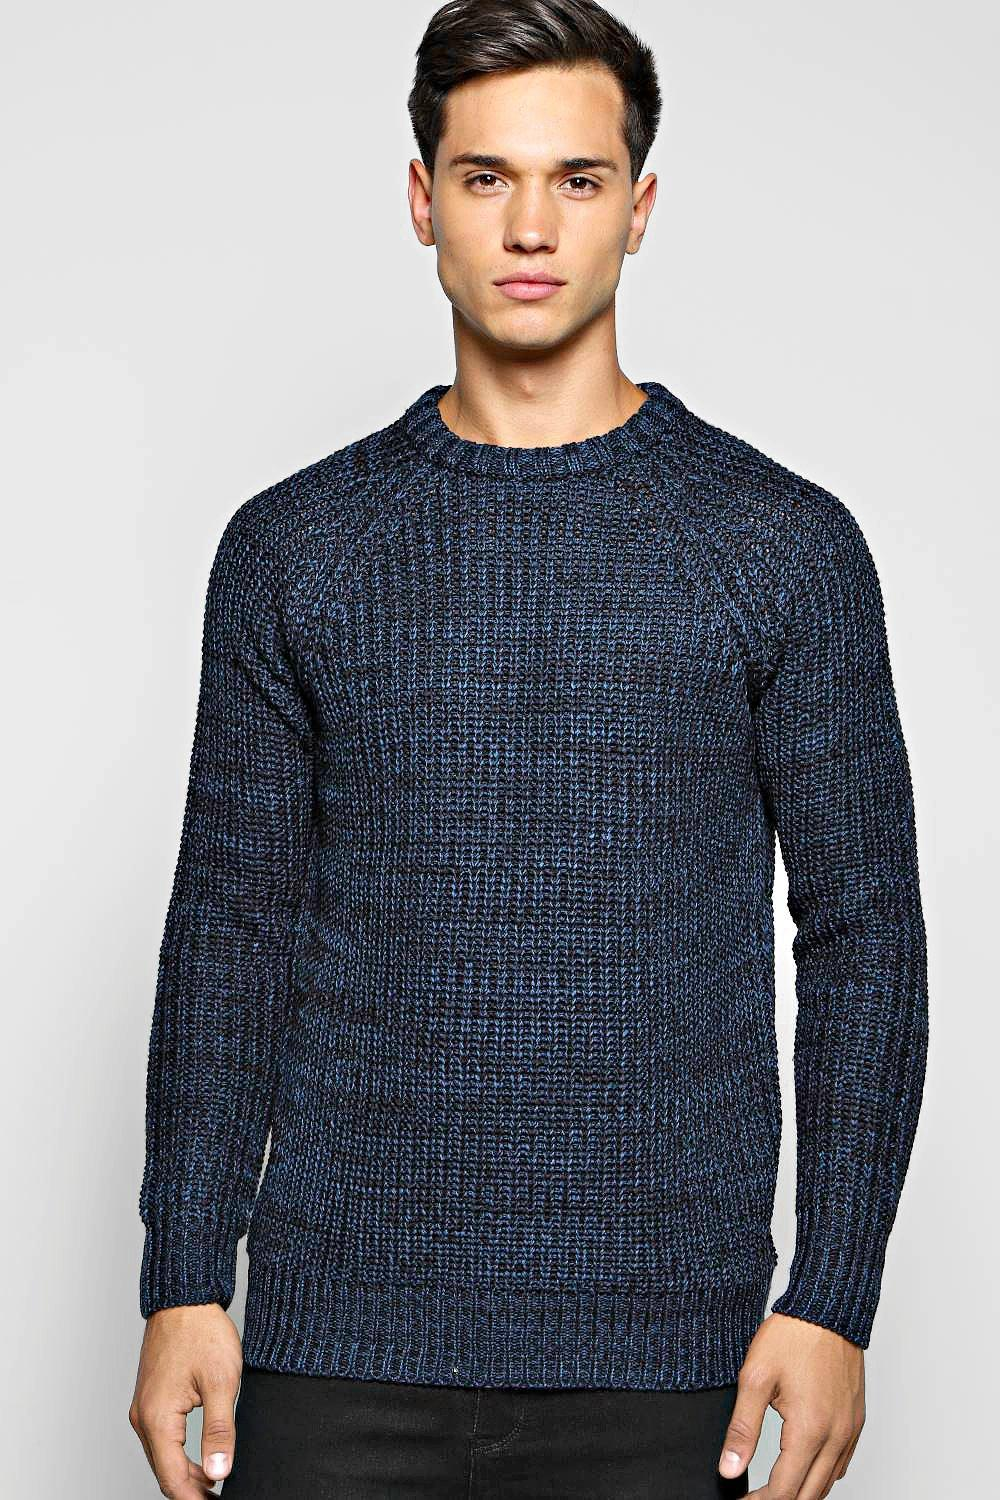 Heavy Knit Mixed Colour Crew Neck Sweater